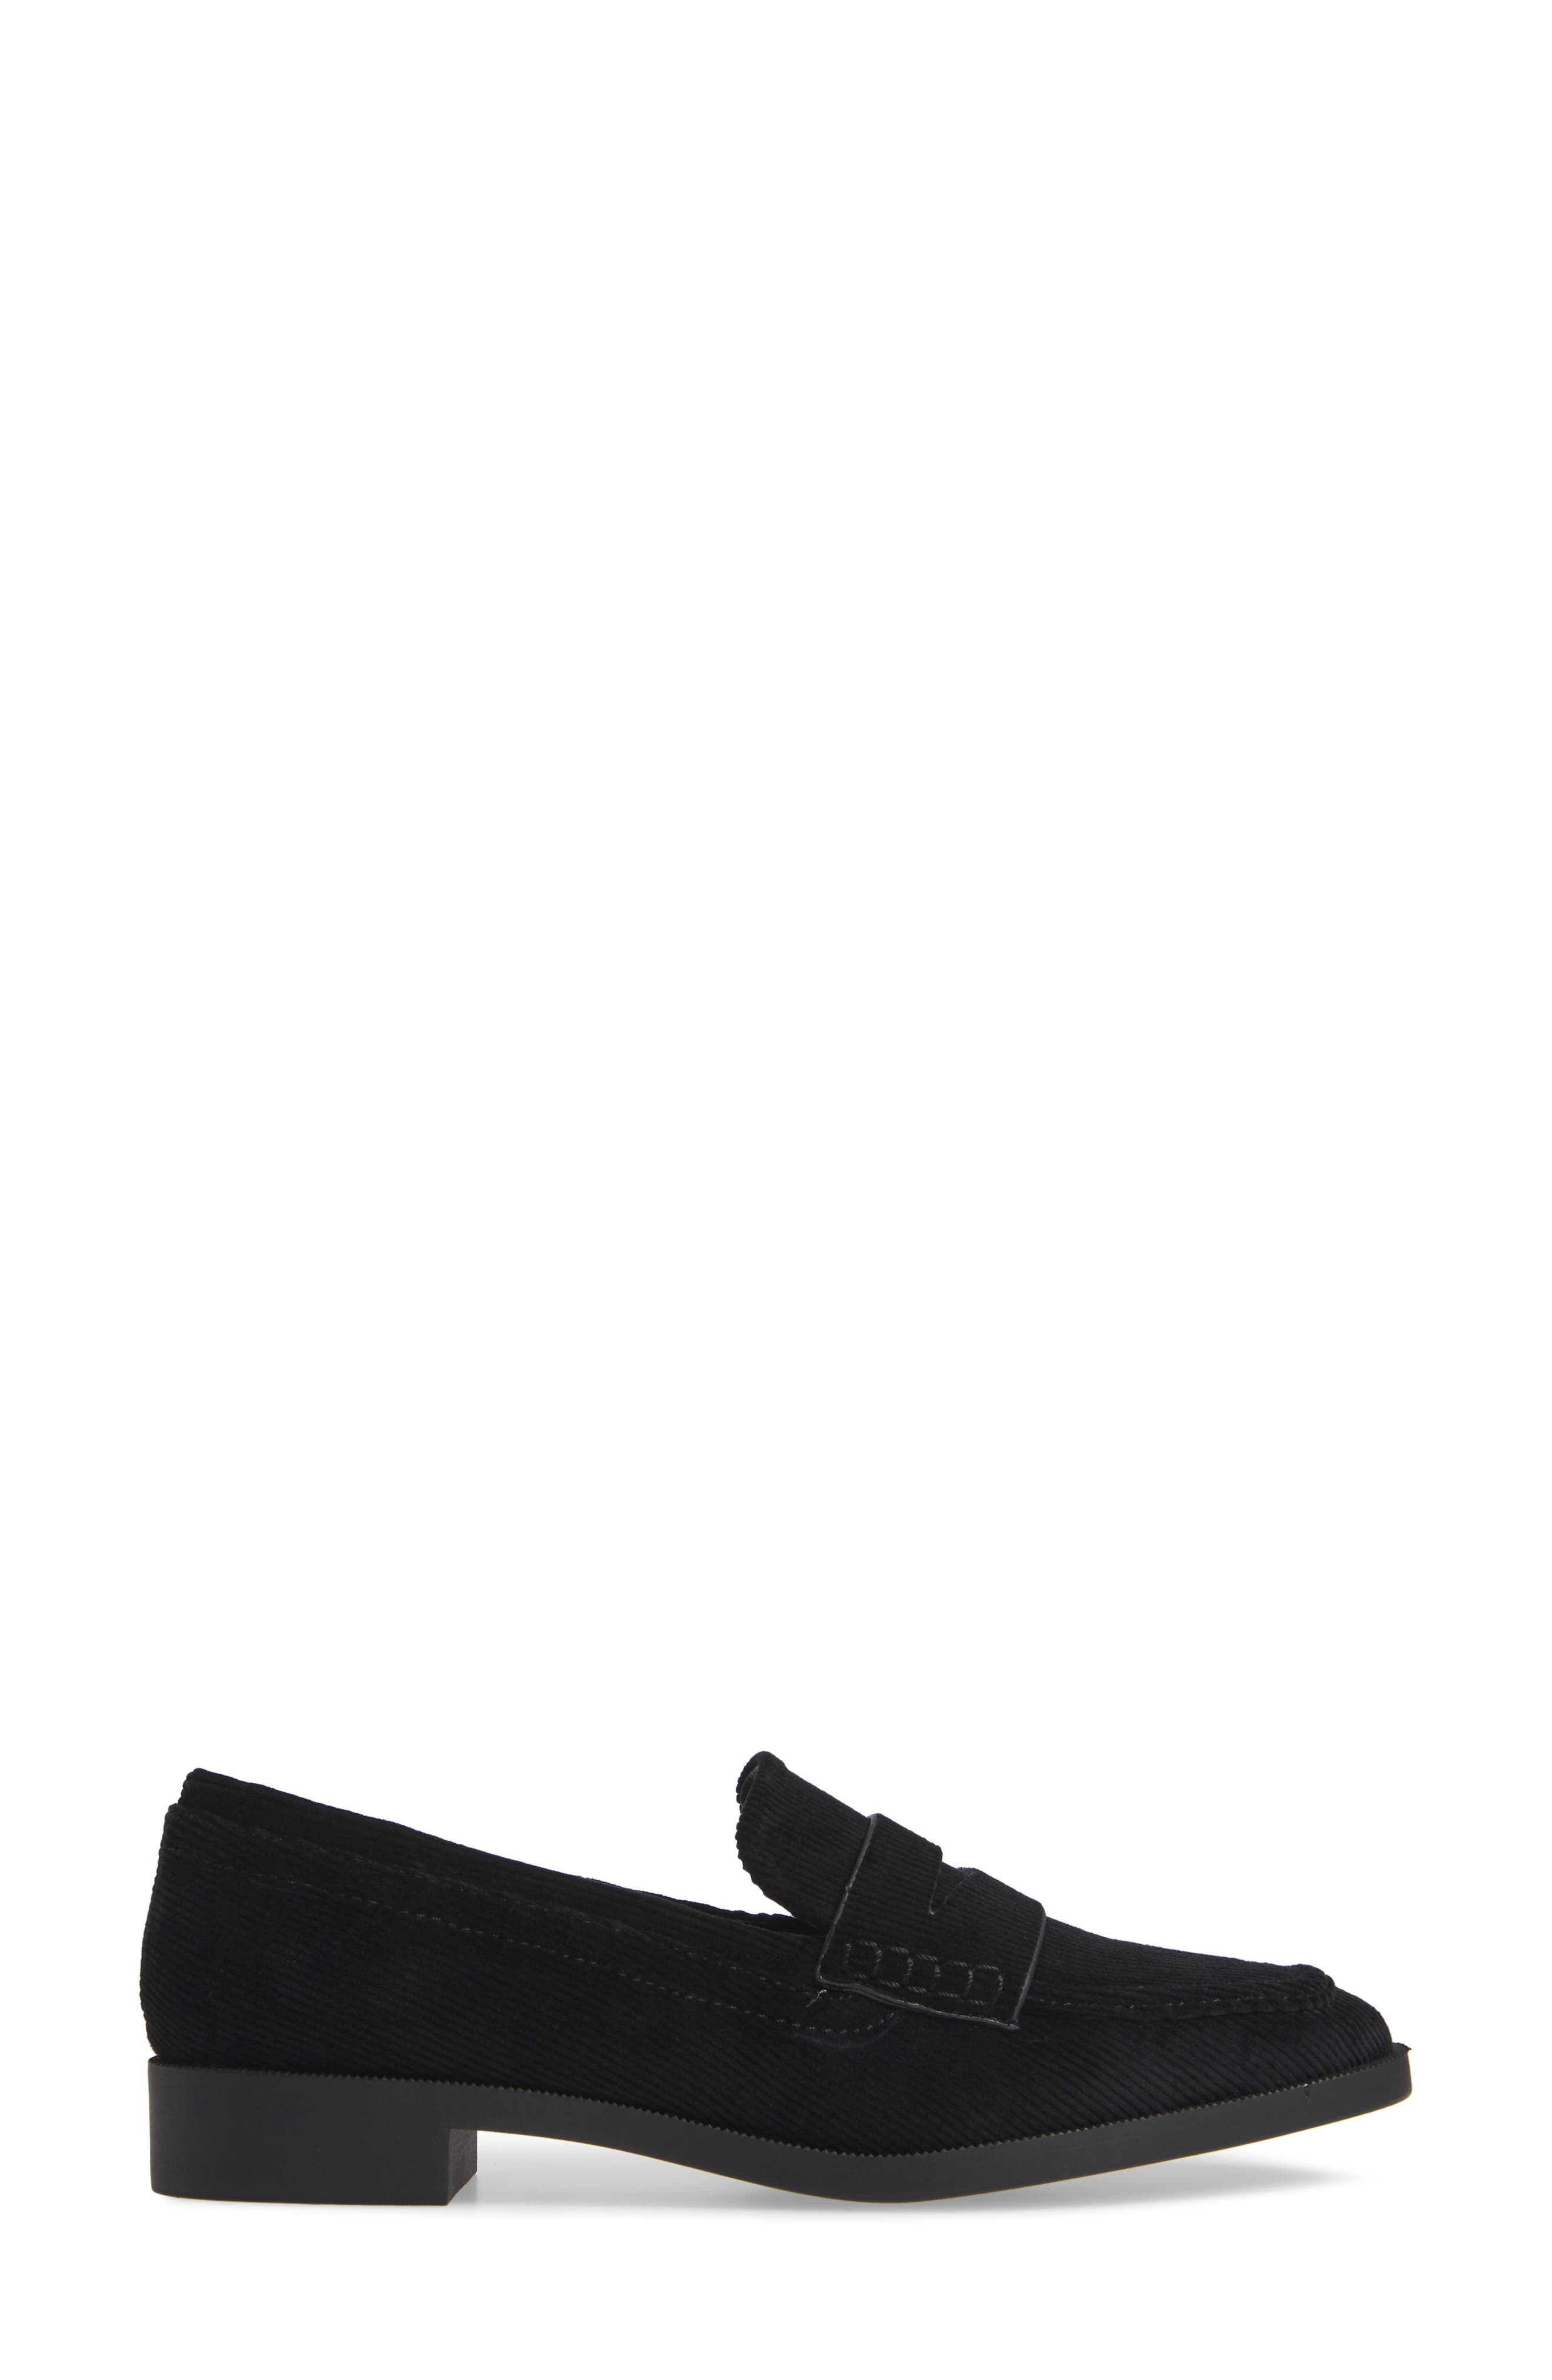 Diplomat Penny Loafer,                             Alternate thumbnail 3, color,                             BLACK FABRIC